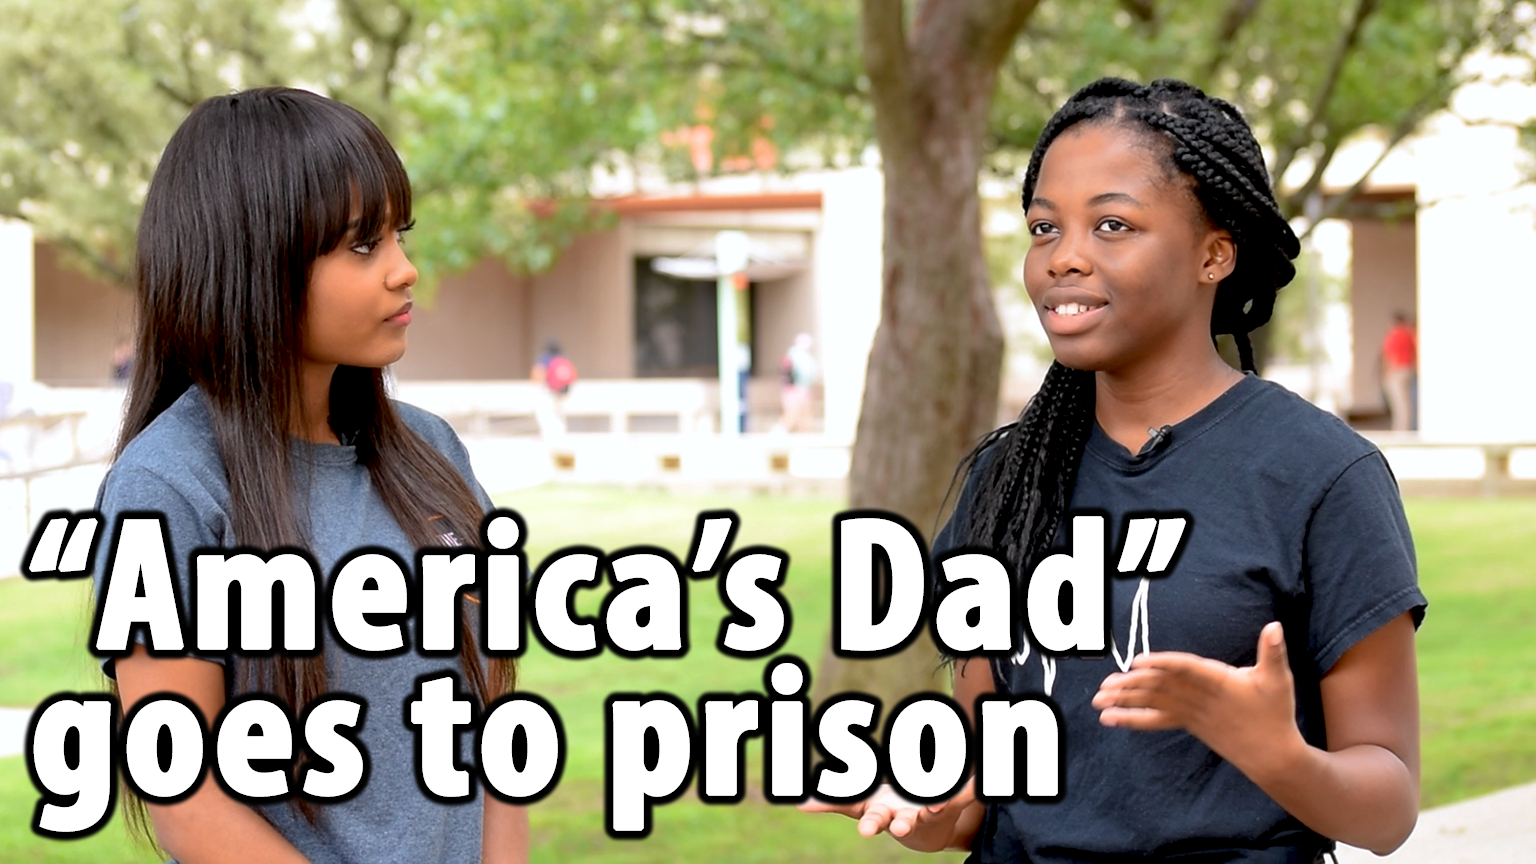 """""""America's Dad"""" goes to prison"""